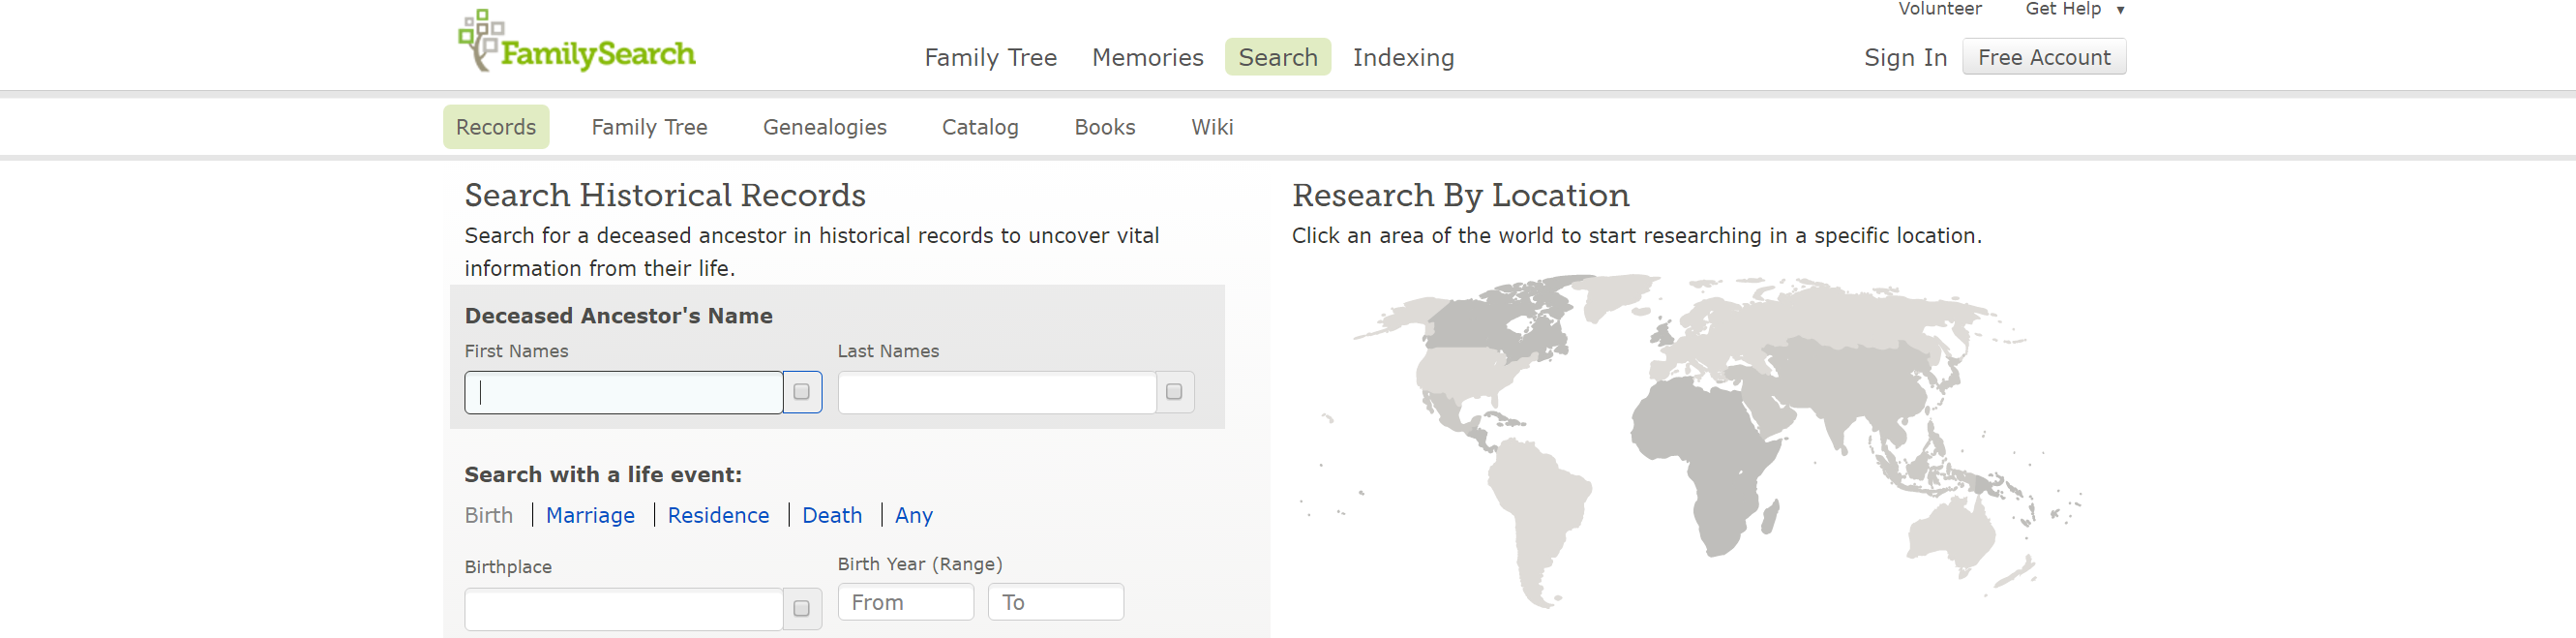 FamilySearch.com